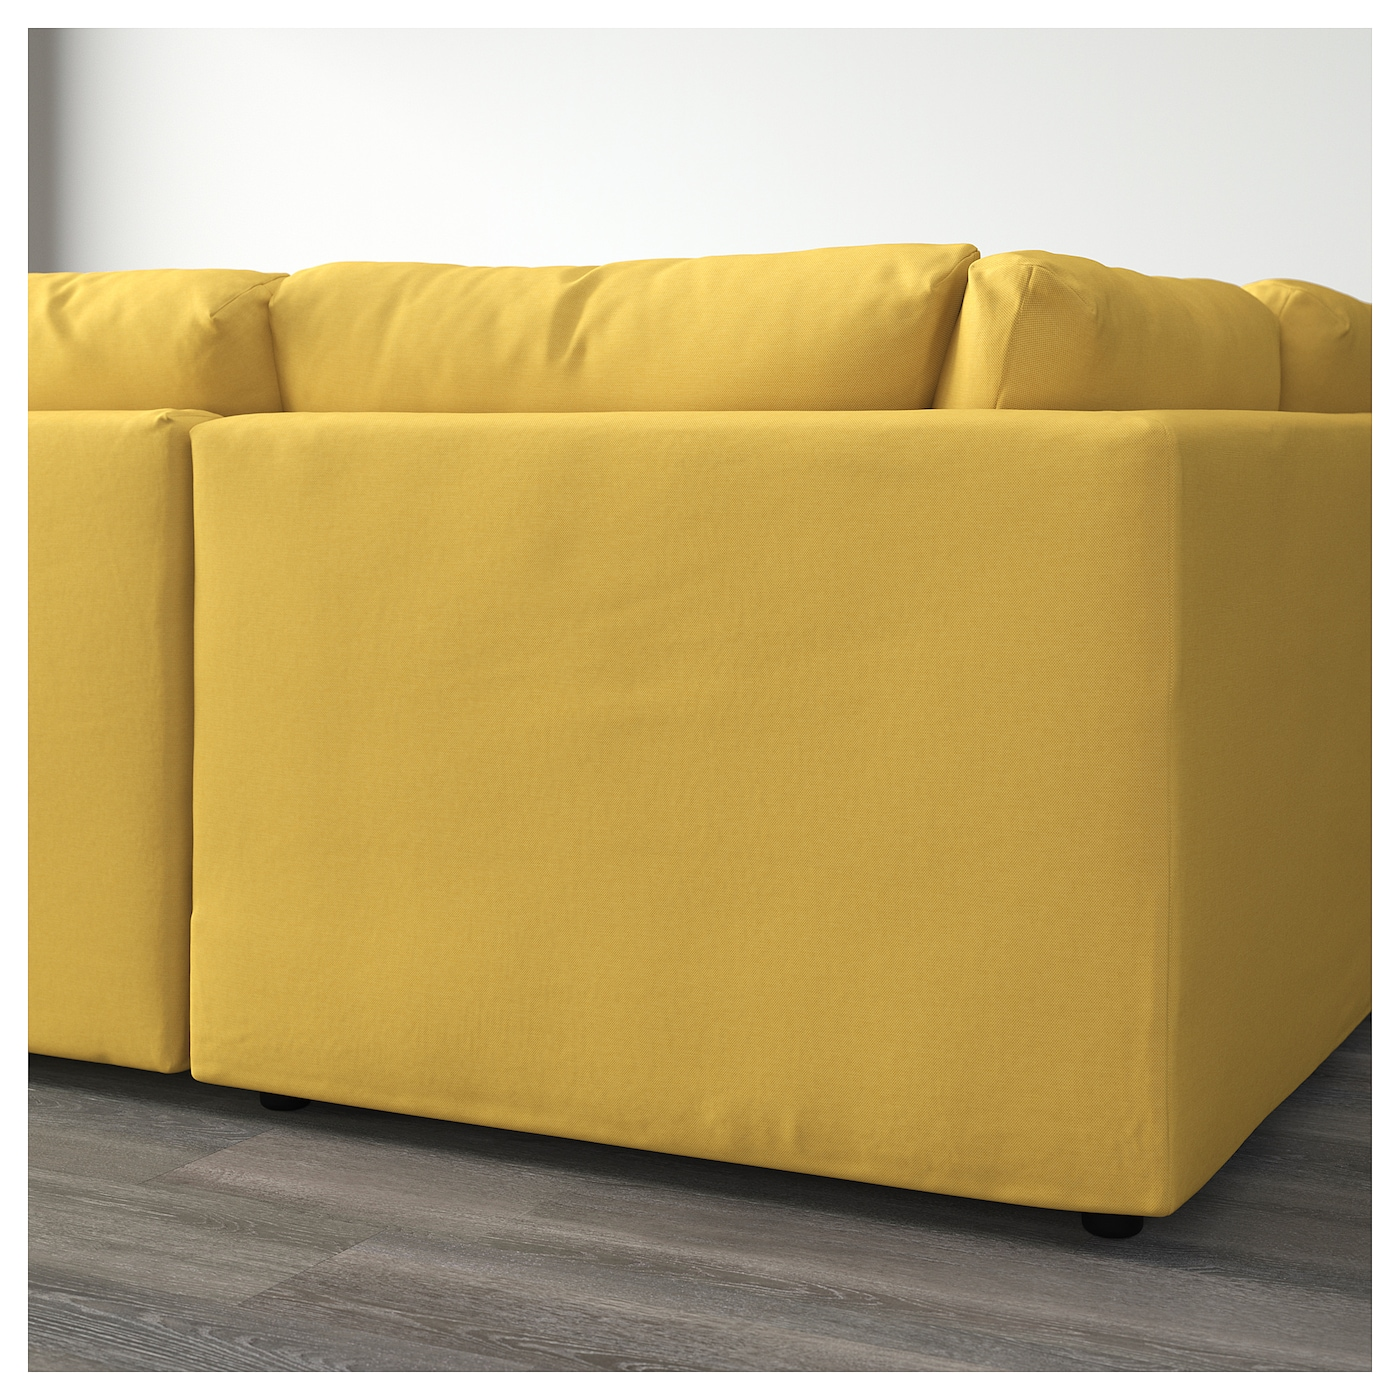 Vimle canap en u 6 places sans accoudoir orrsta jaune for Canape 6 places ikea